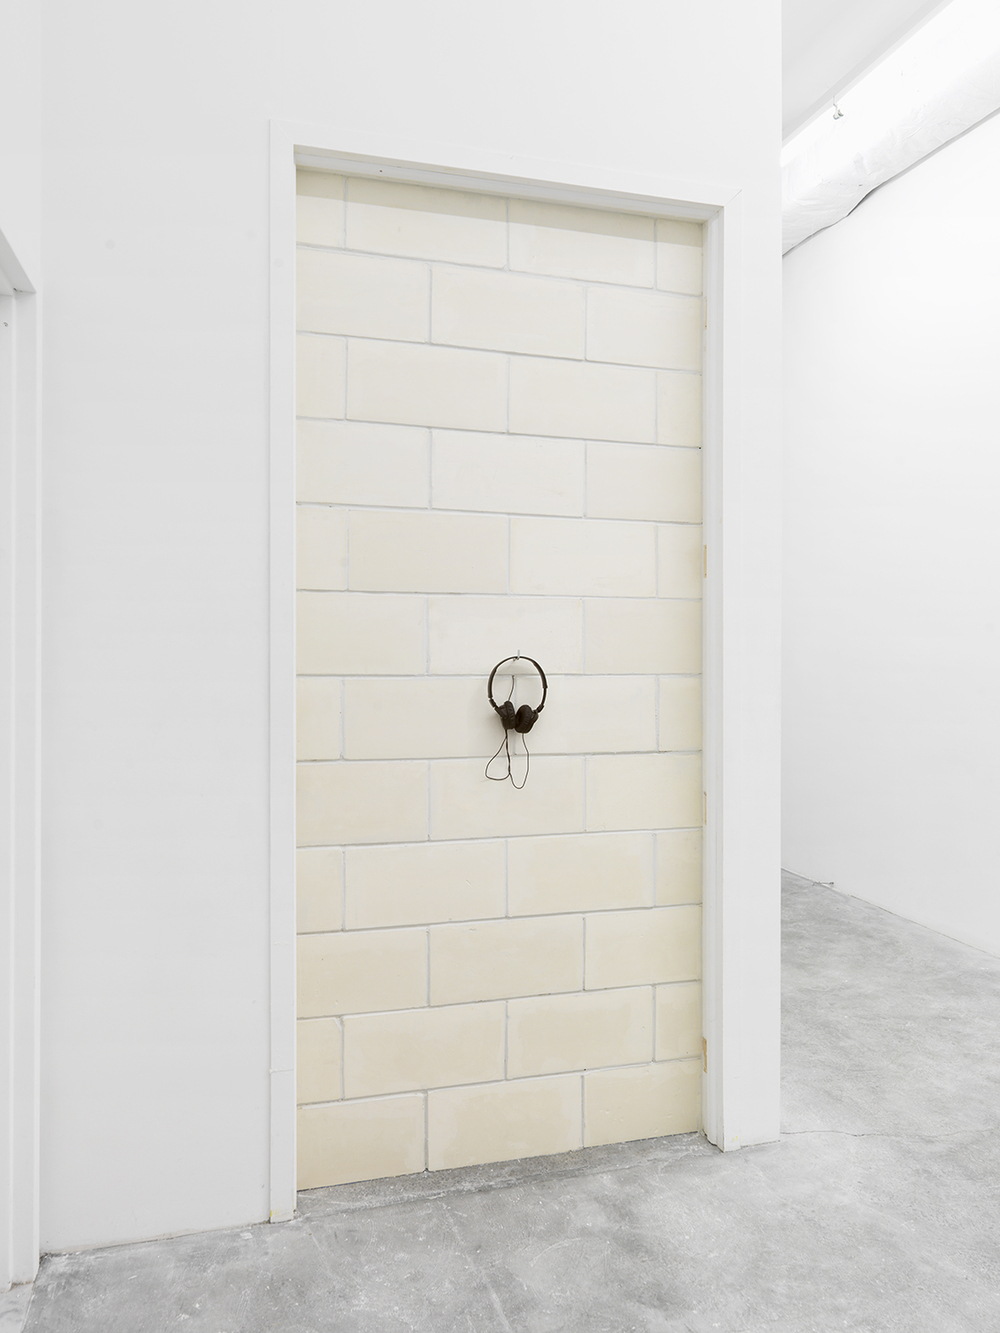 The Wall and the Confession , 2015 Plaster, joint compound, and 9-minute looped audio recording of artist's confession on headphones 96 x 42.13 inches